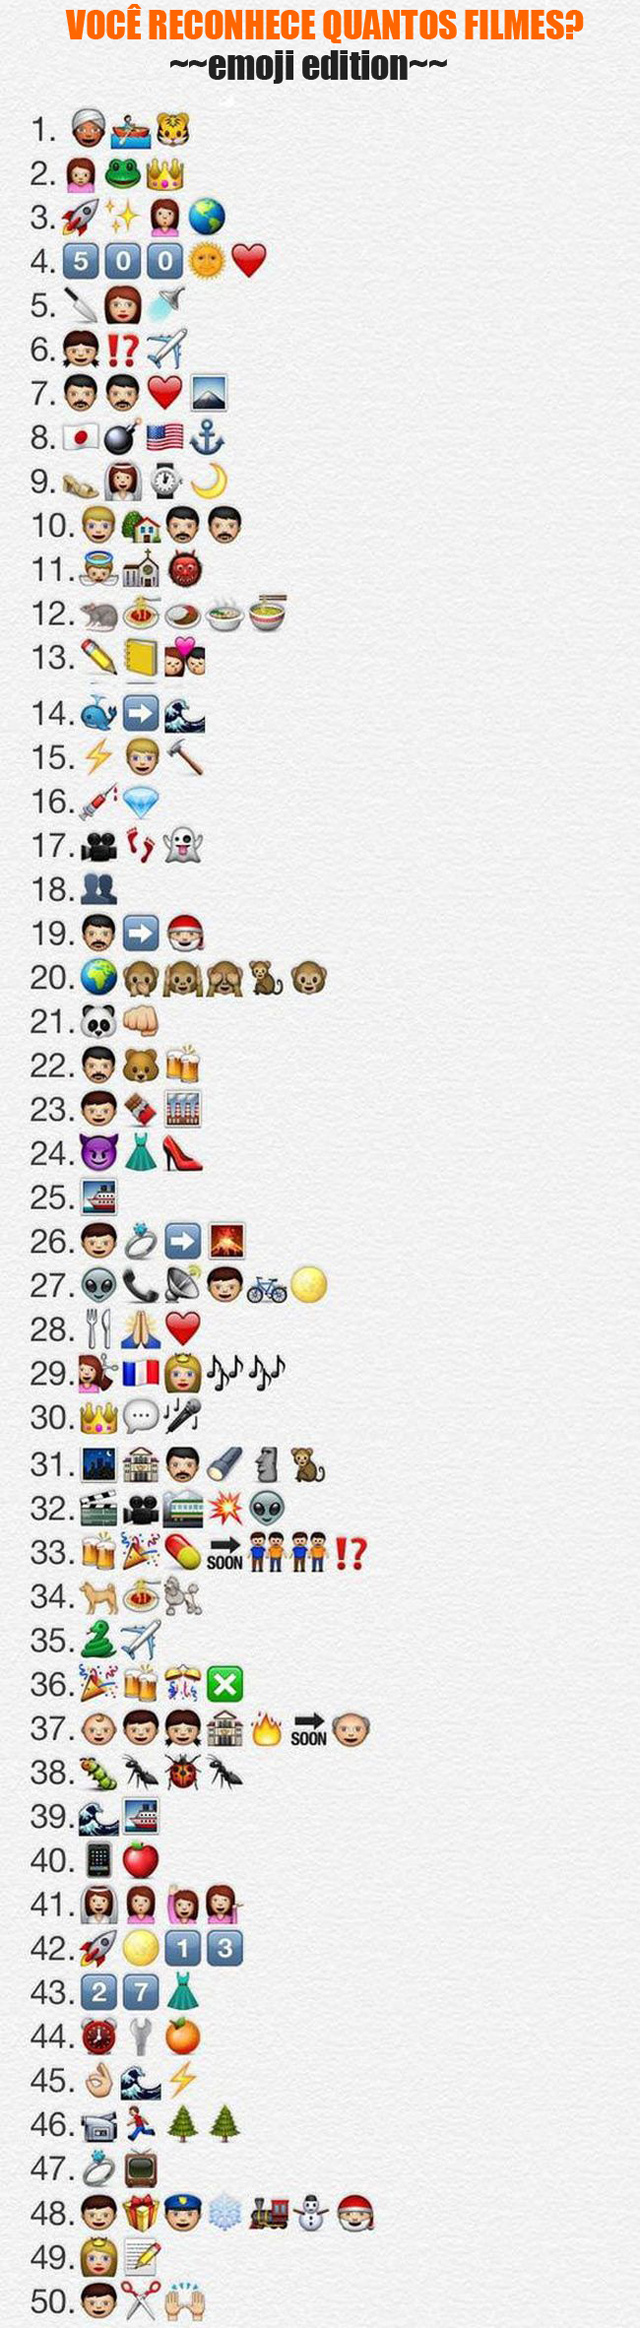 filmes-emoticons